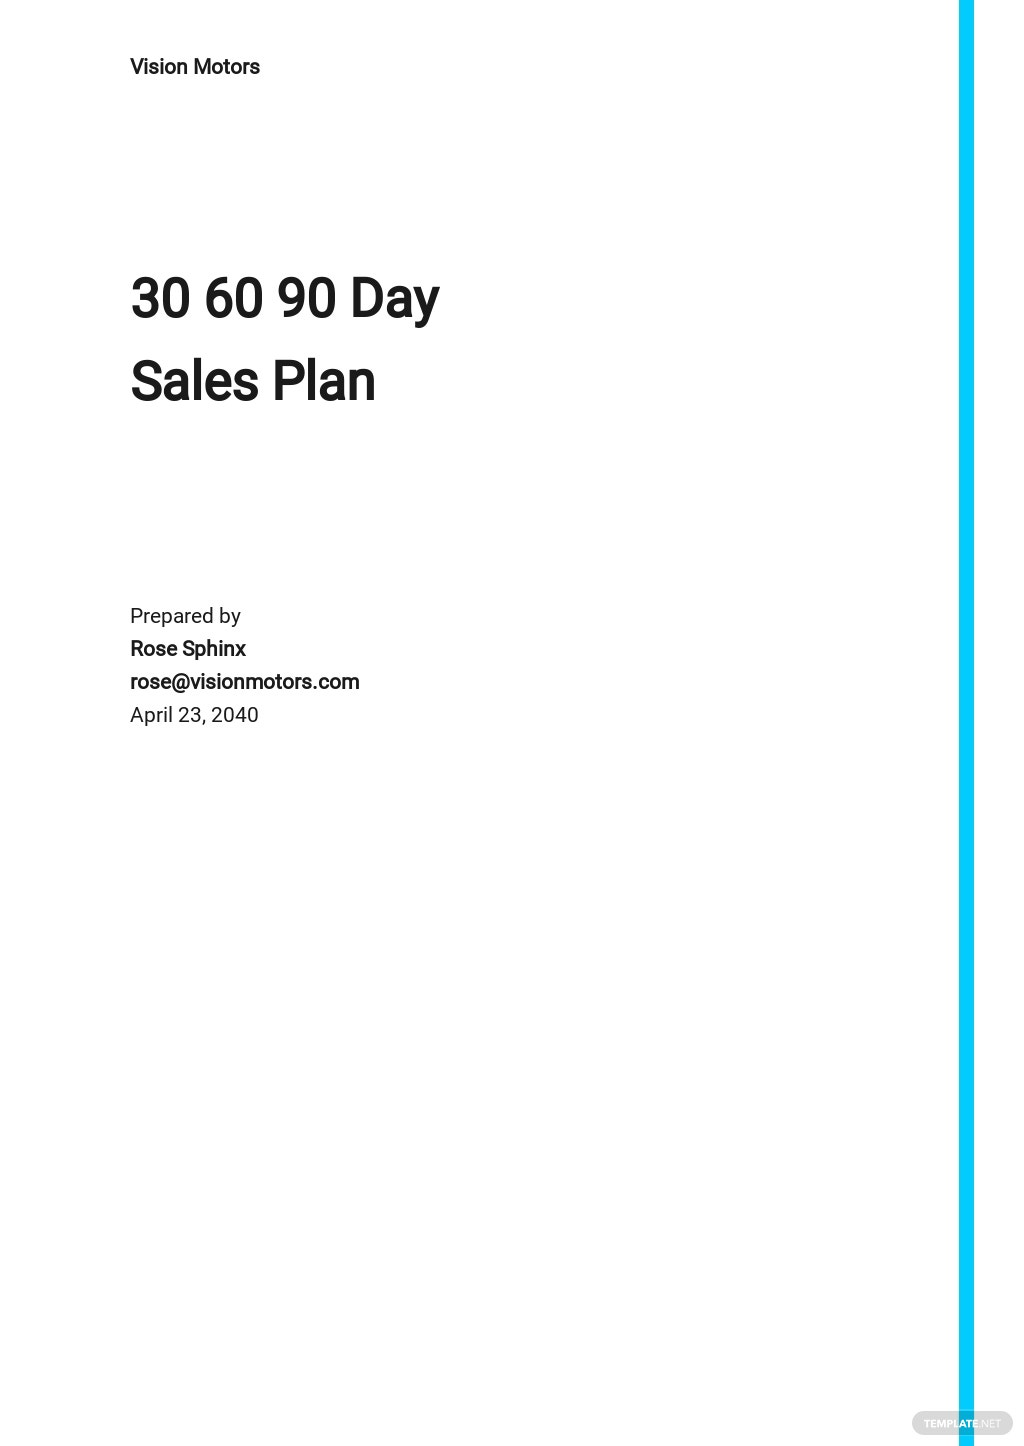 30 60 90 Day Sales Action Plan Template.jpe